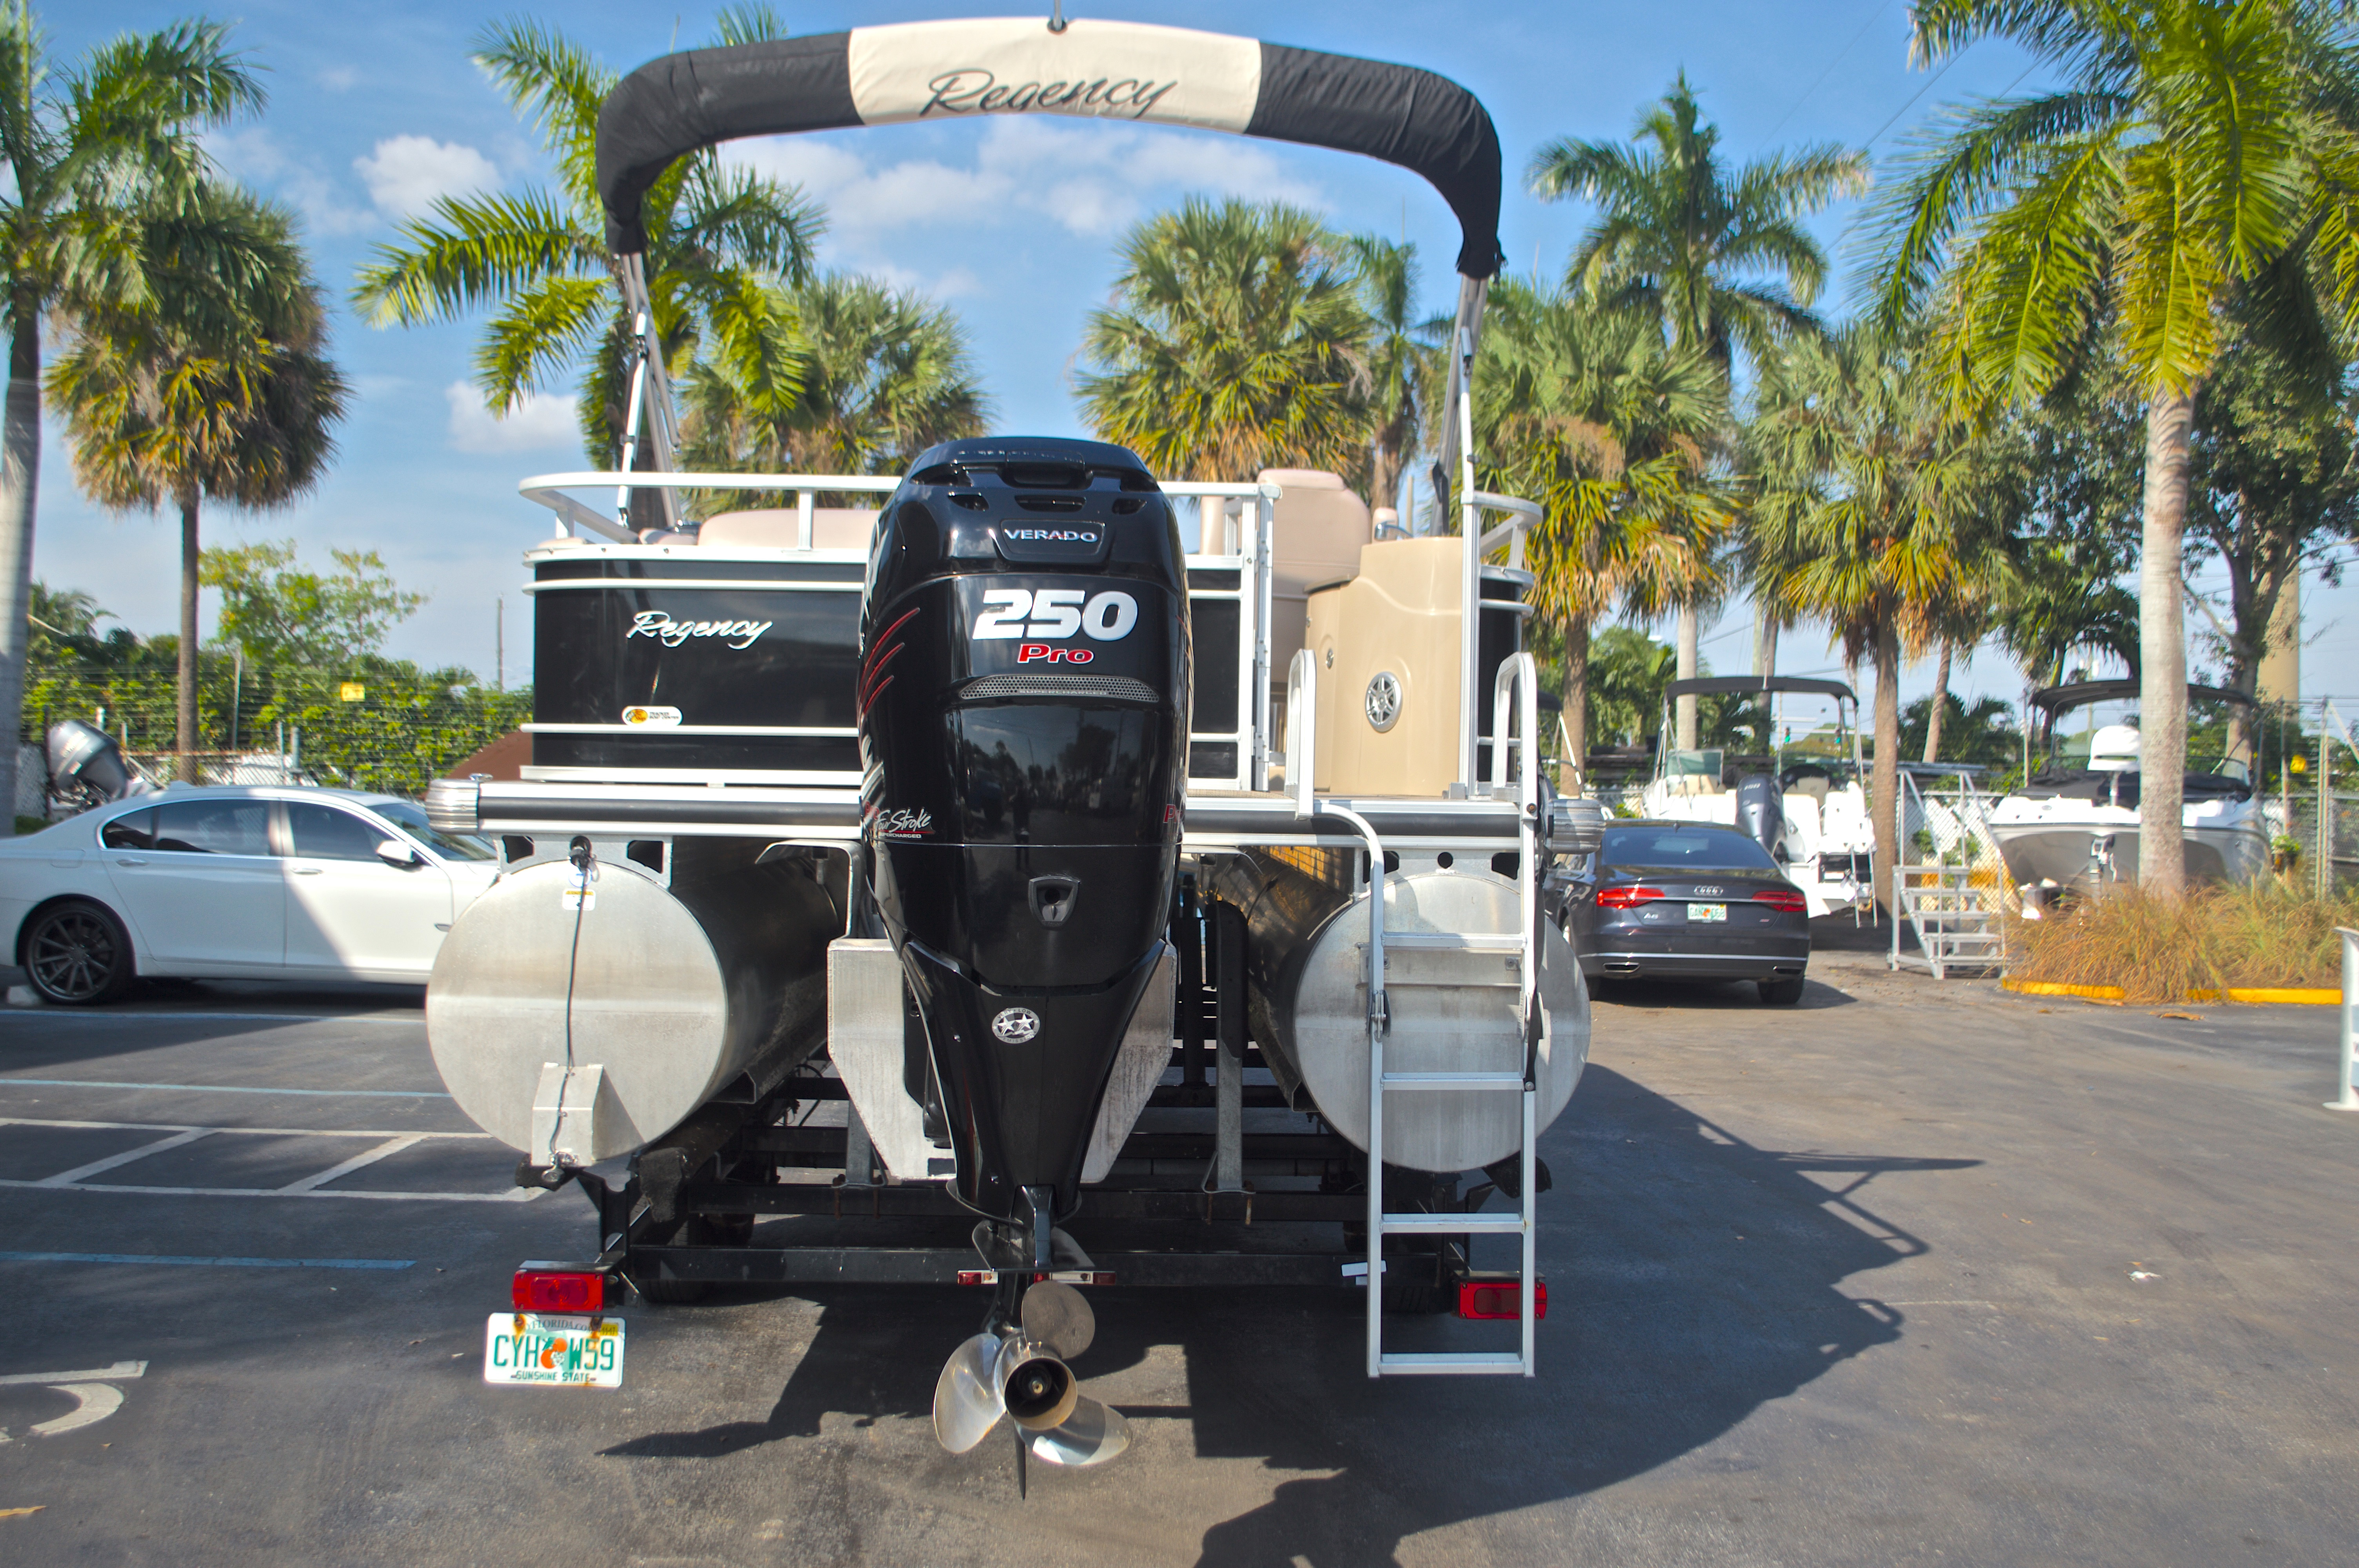 Thumbnail 11 for Used 2014 Regency Party Barge 254 XP3 boat for sale in West Palm Beach, FL